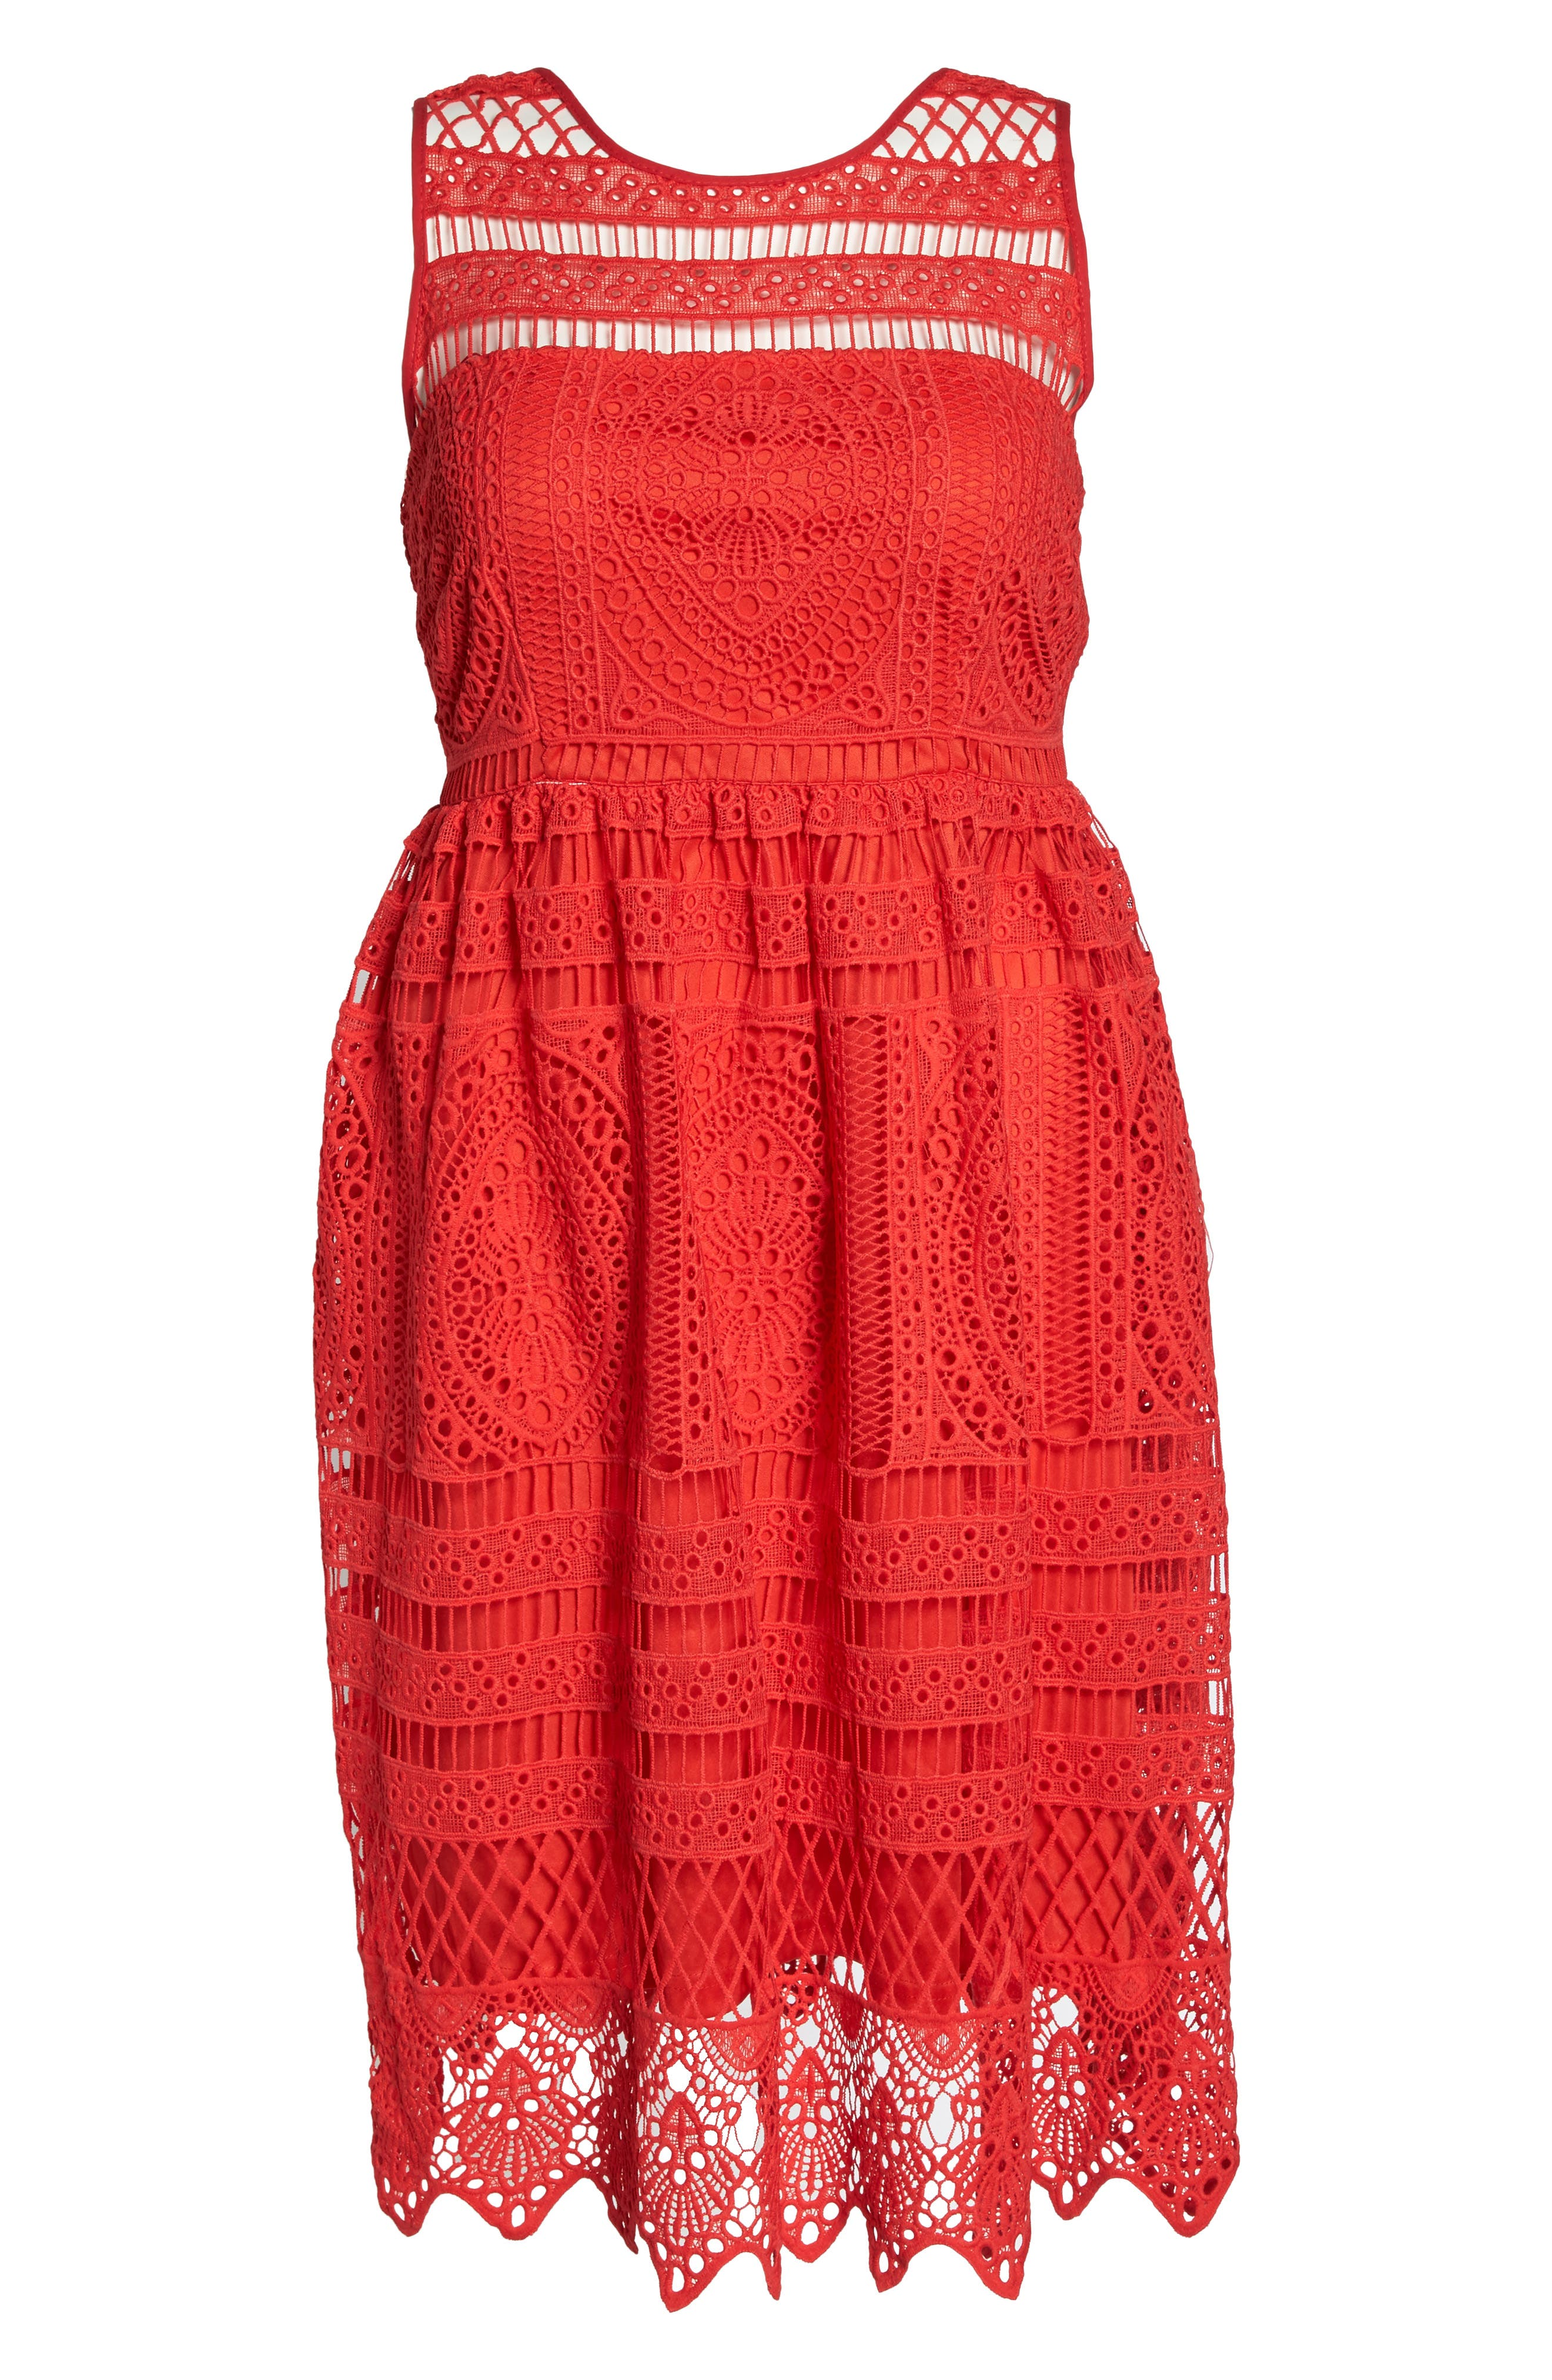 Eyelet Lace Fit & Flare Dress,                             Alternate thumbnail 6, color,                             600